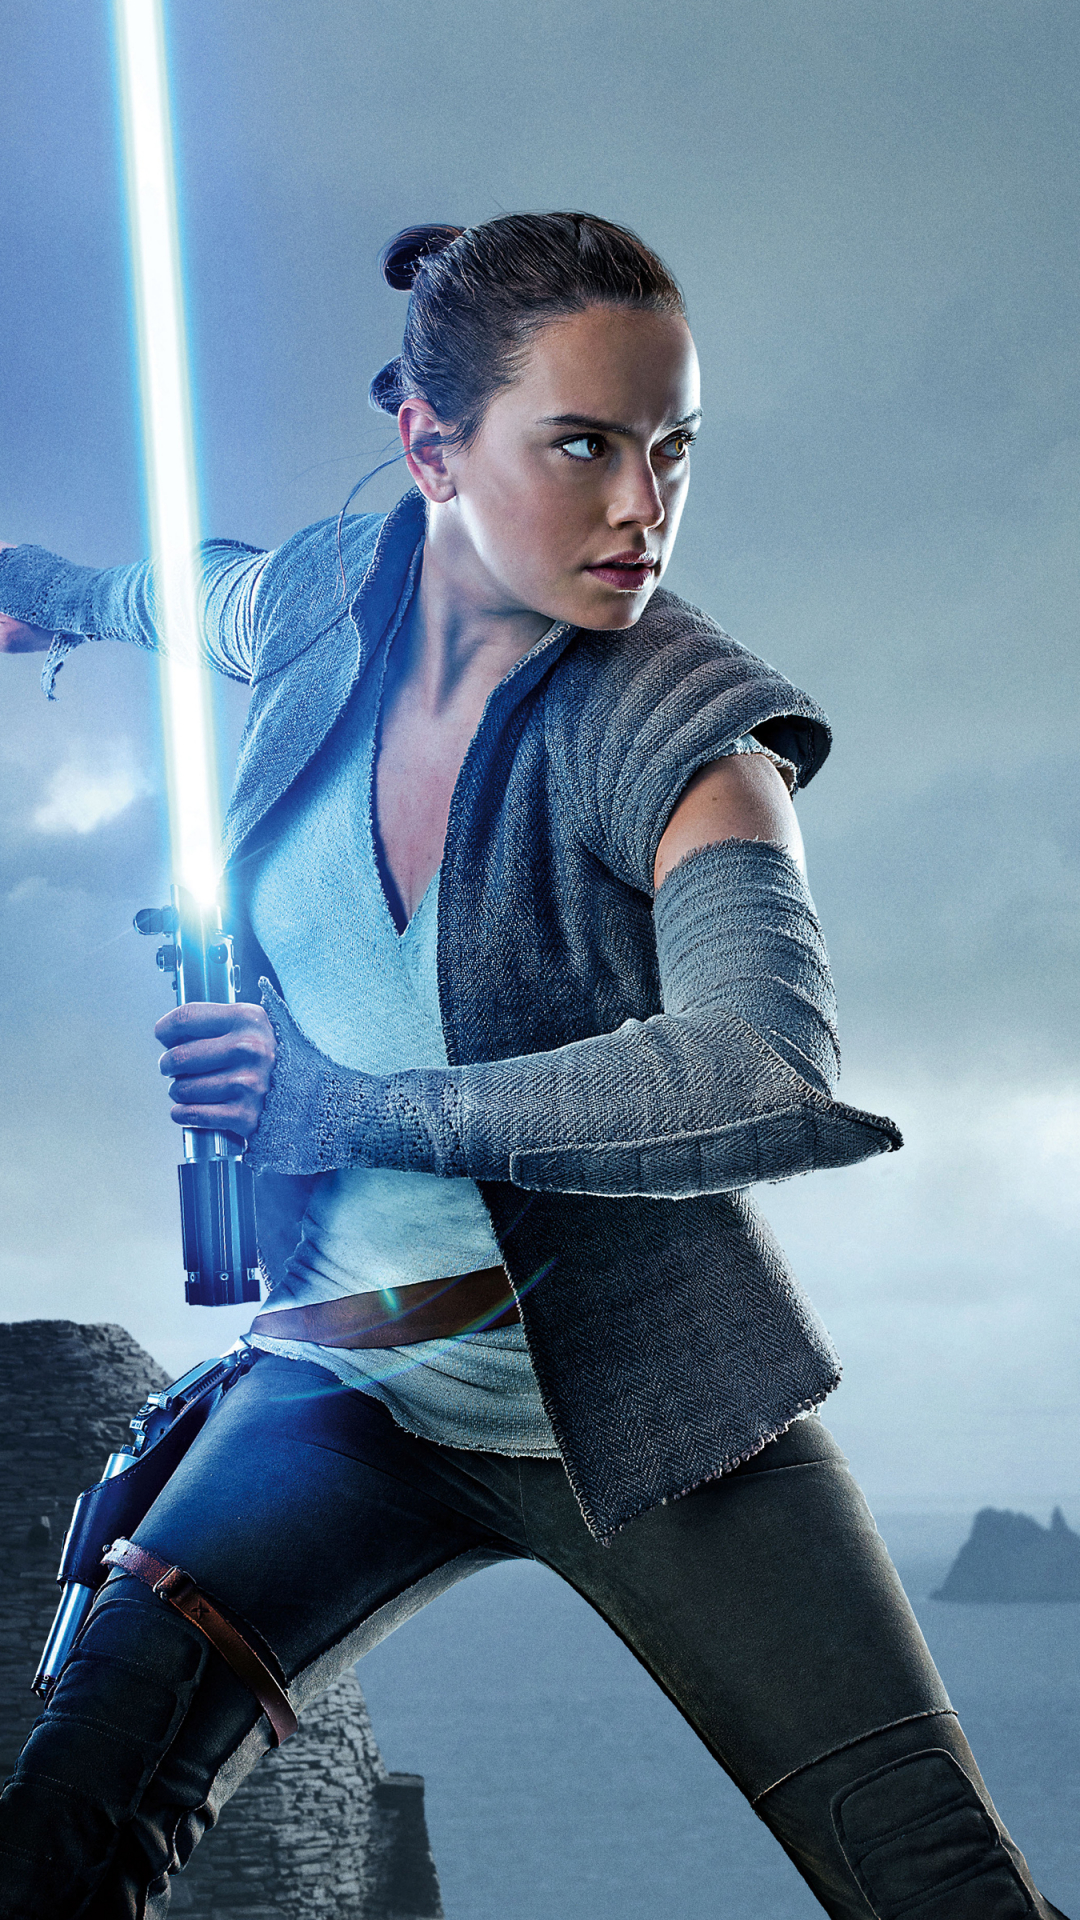 Free Download Wallpaper 4k Daisy Ridley As Rey Star Wars The Last Jedi 5k Daisy 3840x2400 For Your Desktop Mobile Tablet Explore 35 4k Daisy Ridley 2020 Wallpapers 4k